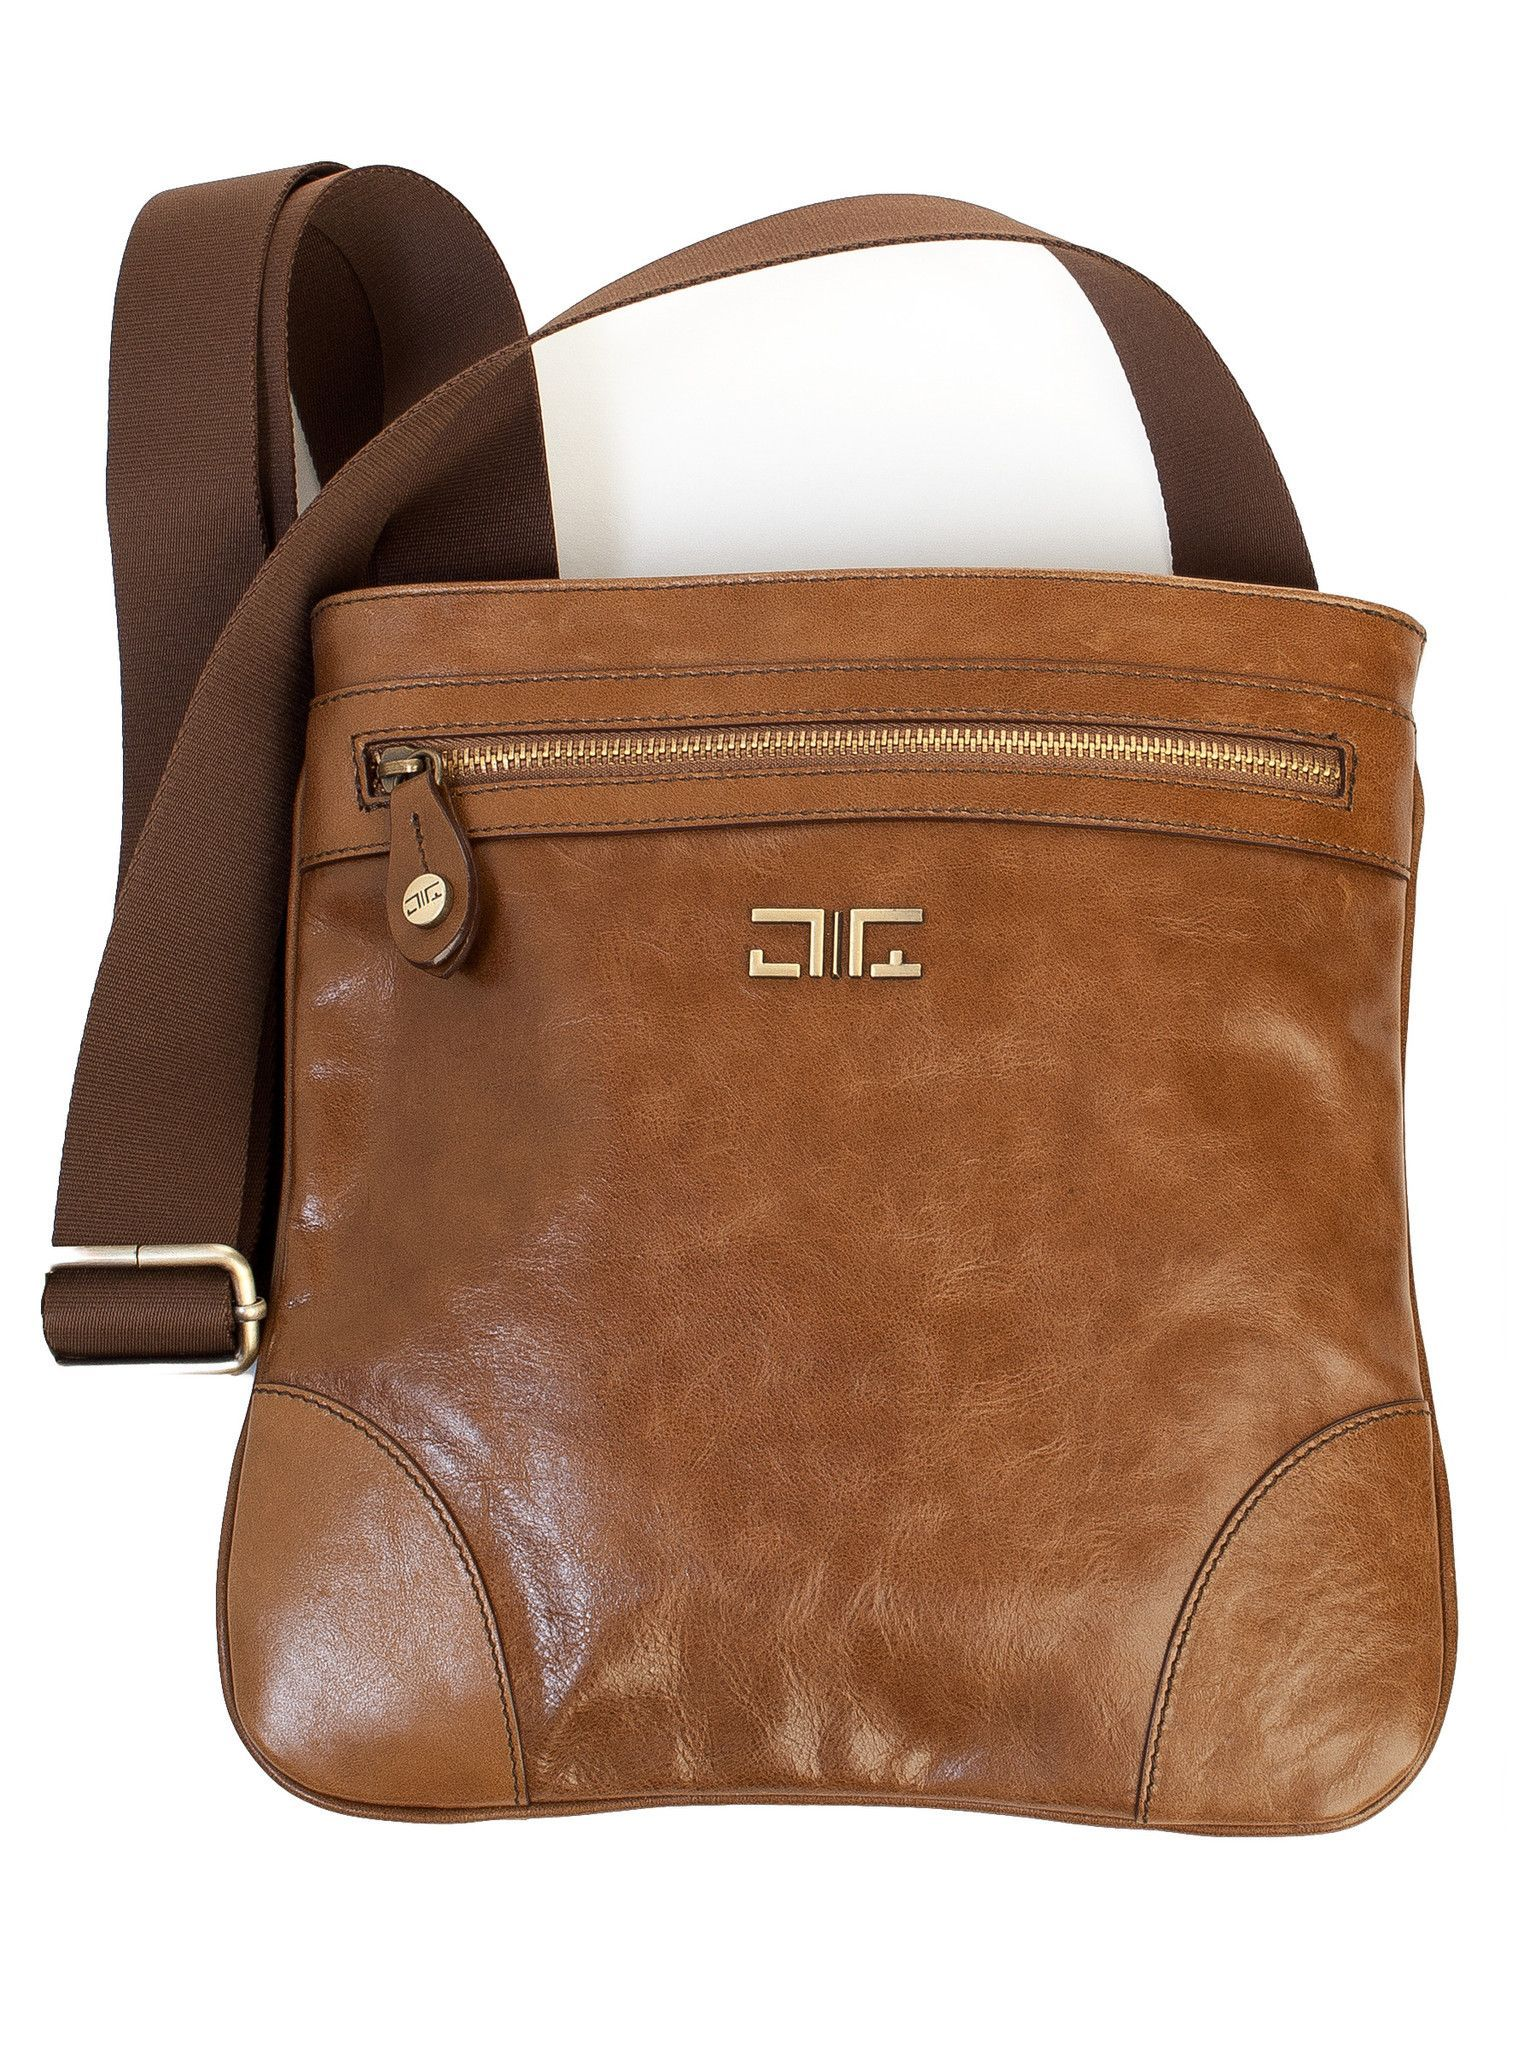 fdfbfc43df15 Hermes-Small Messenger Flight Bag-Saddle. 100% Made in Italy from vegetable  dyed leather